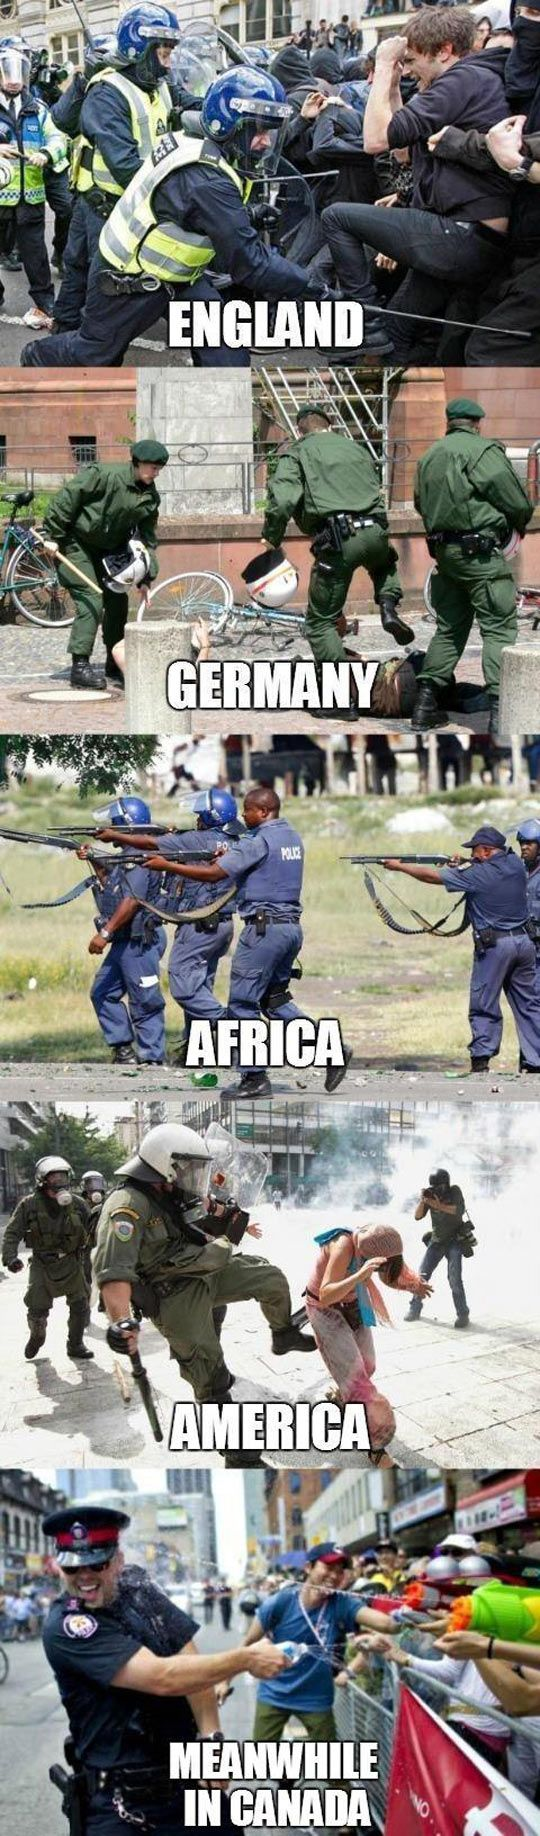 Across the world // funny pictures - funny photos - funny images - funny pics - funny quotes - #lol #humor #funnypictures